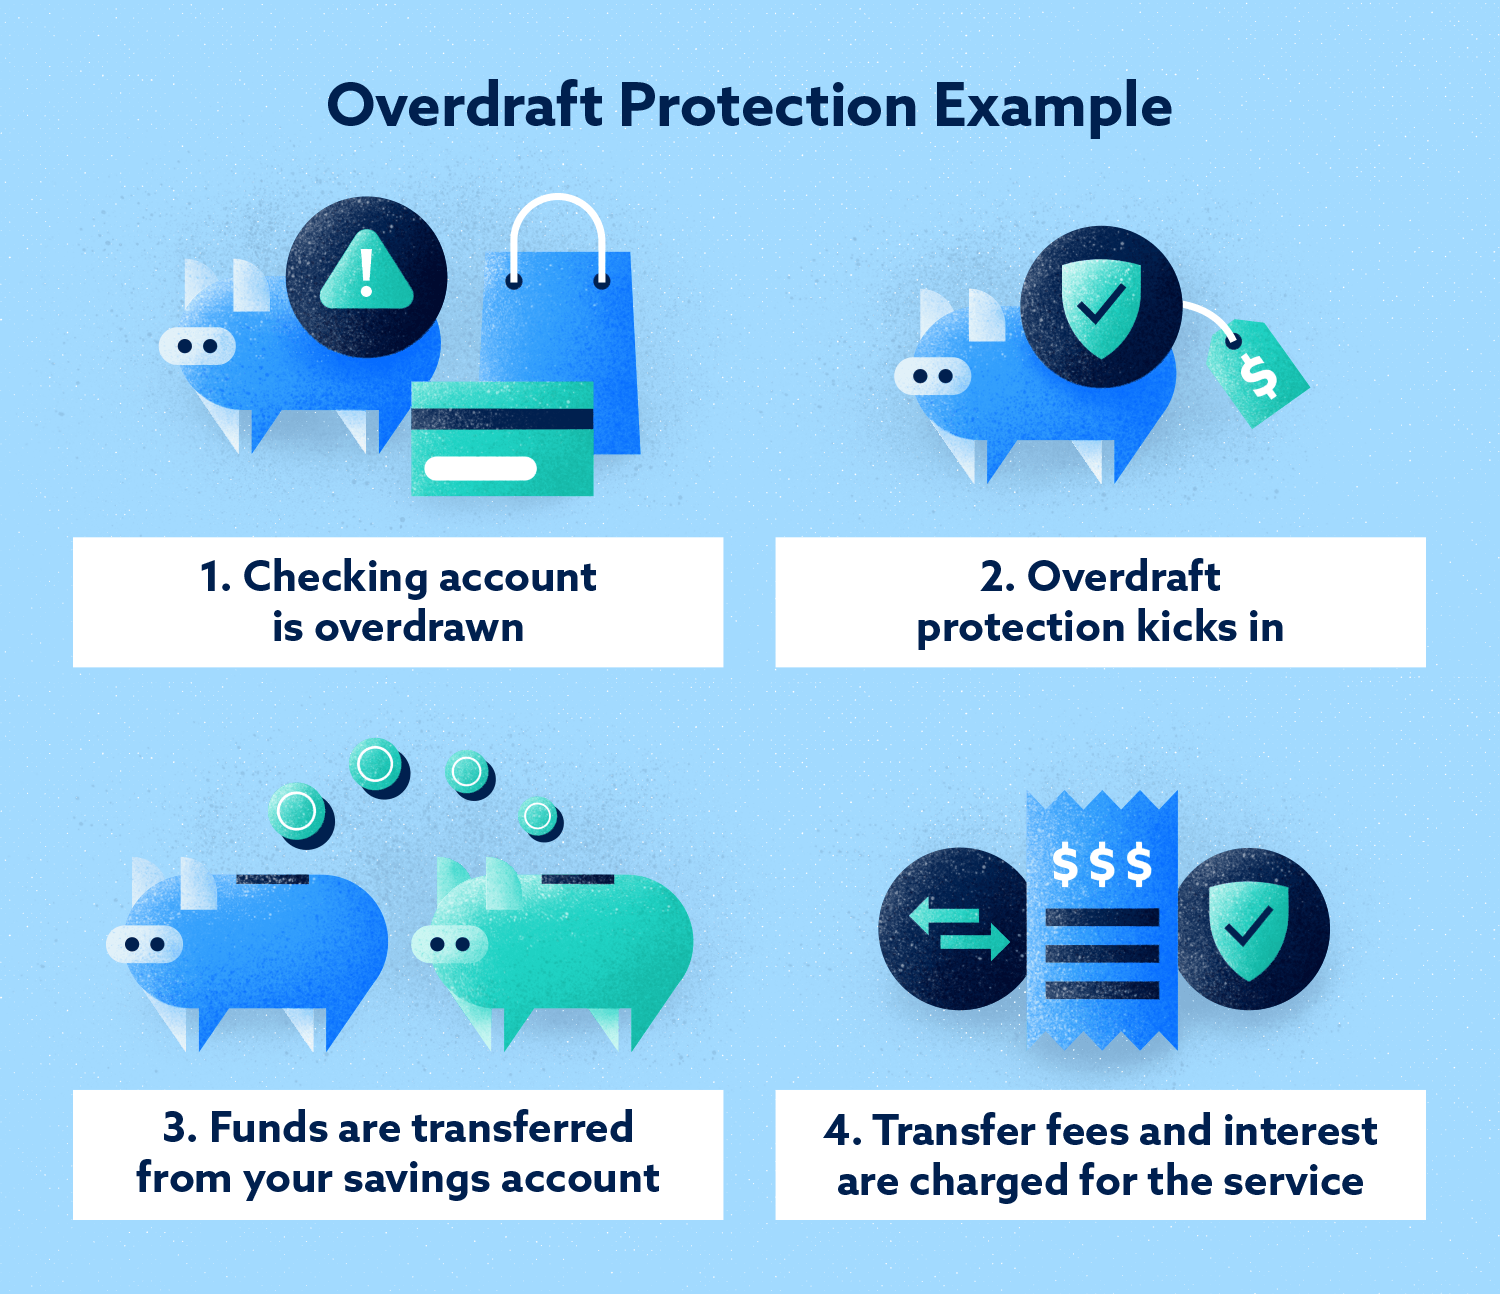 overdraft protection example